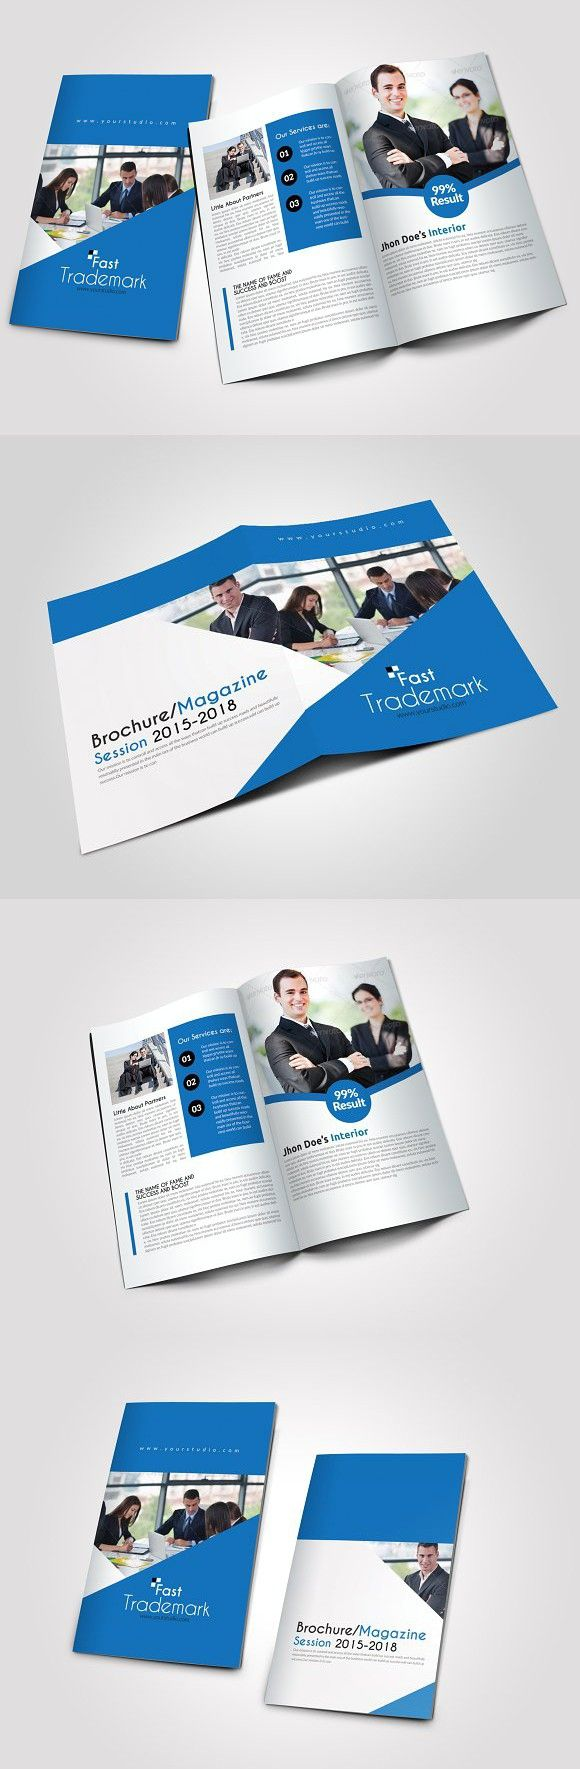 6541 best creative business card templates images on pinterest 4 pages business bi fold brochure creative business card templates wajeb Choice Image